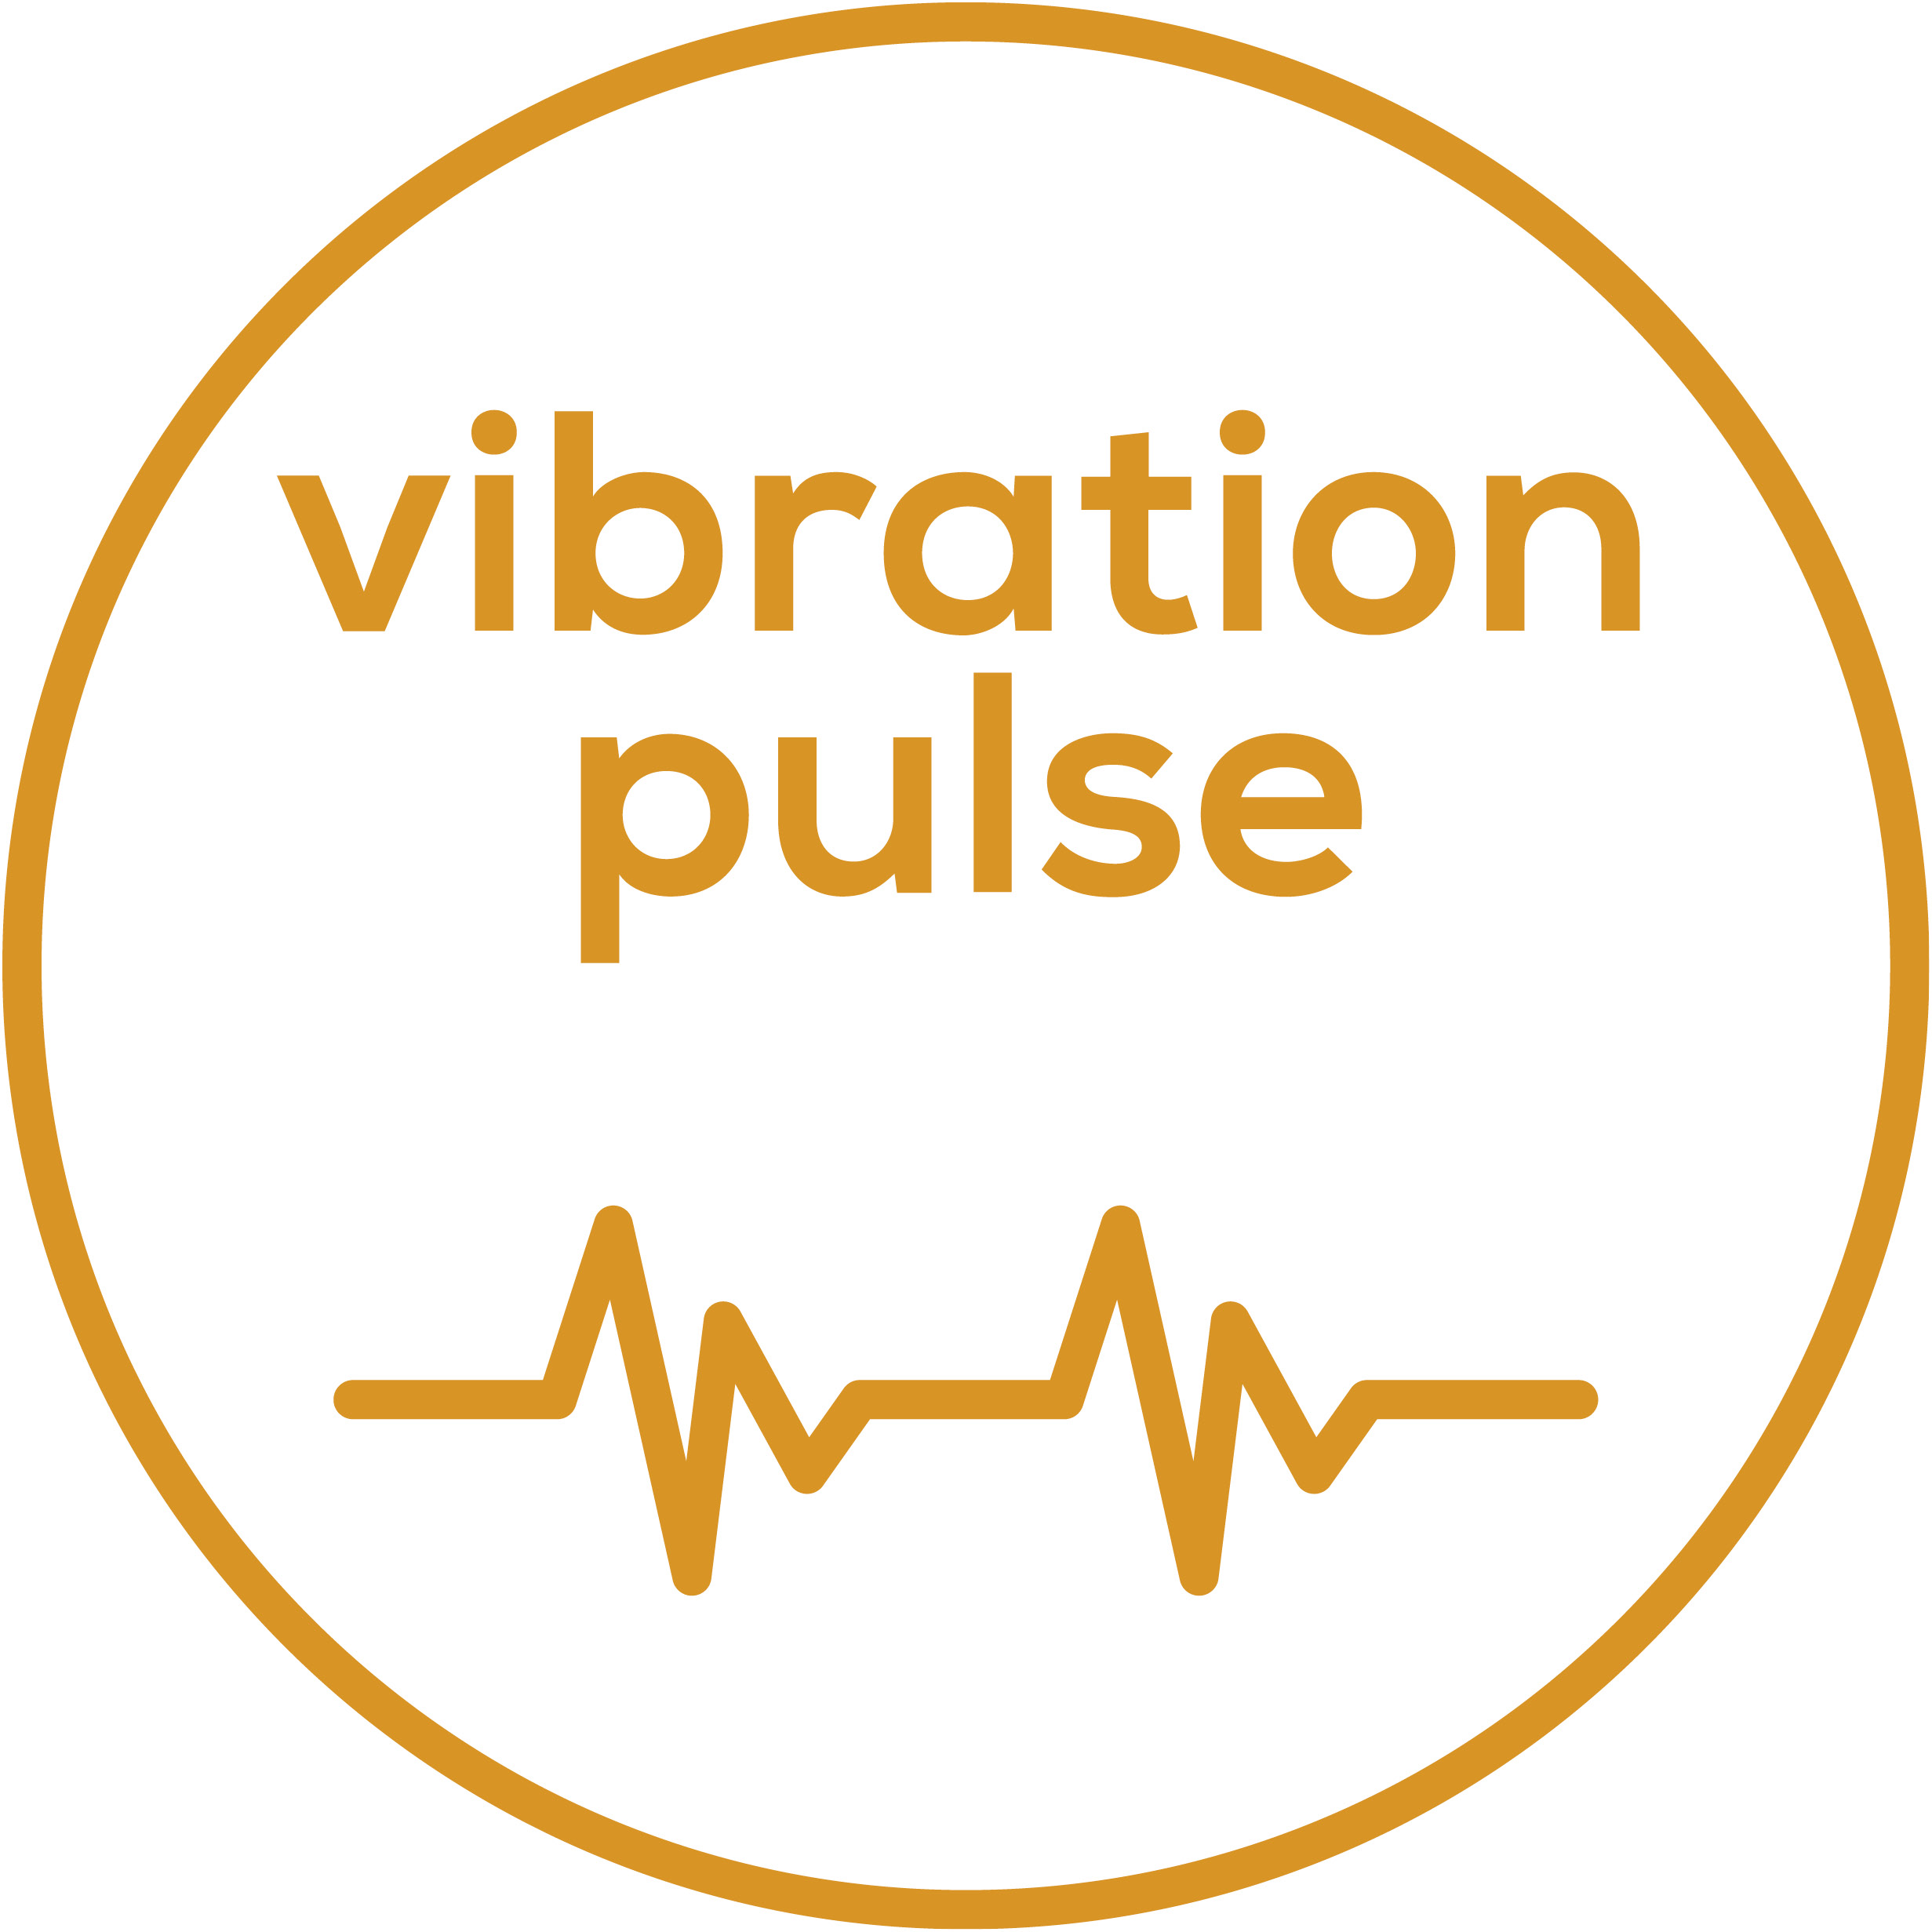 Impulsion de vibration Correction immédiate du ronflement par des vibrations au niveau du front